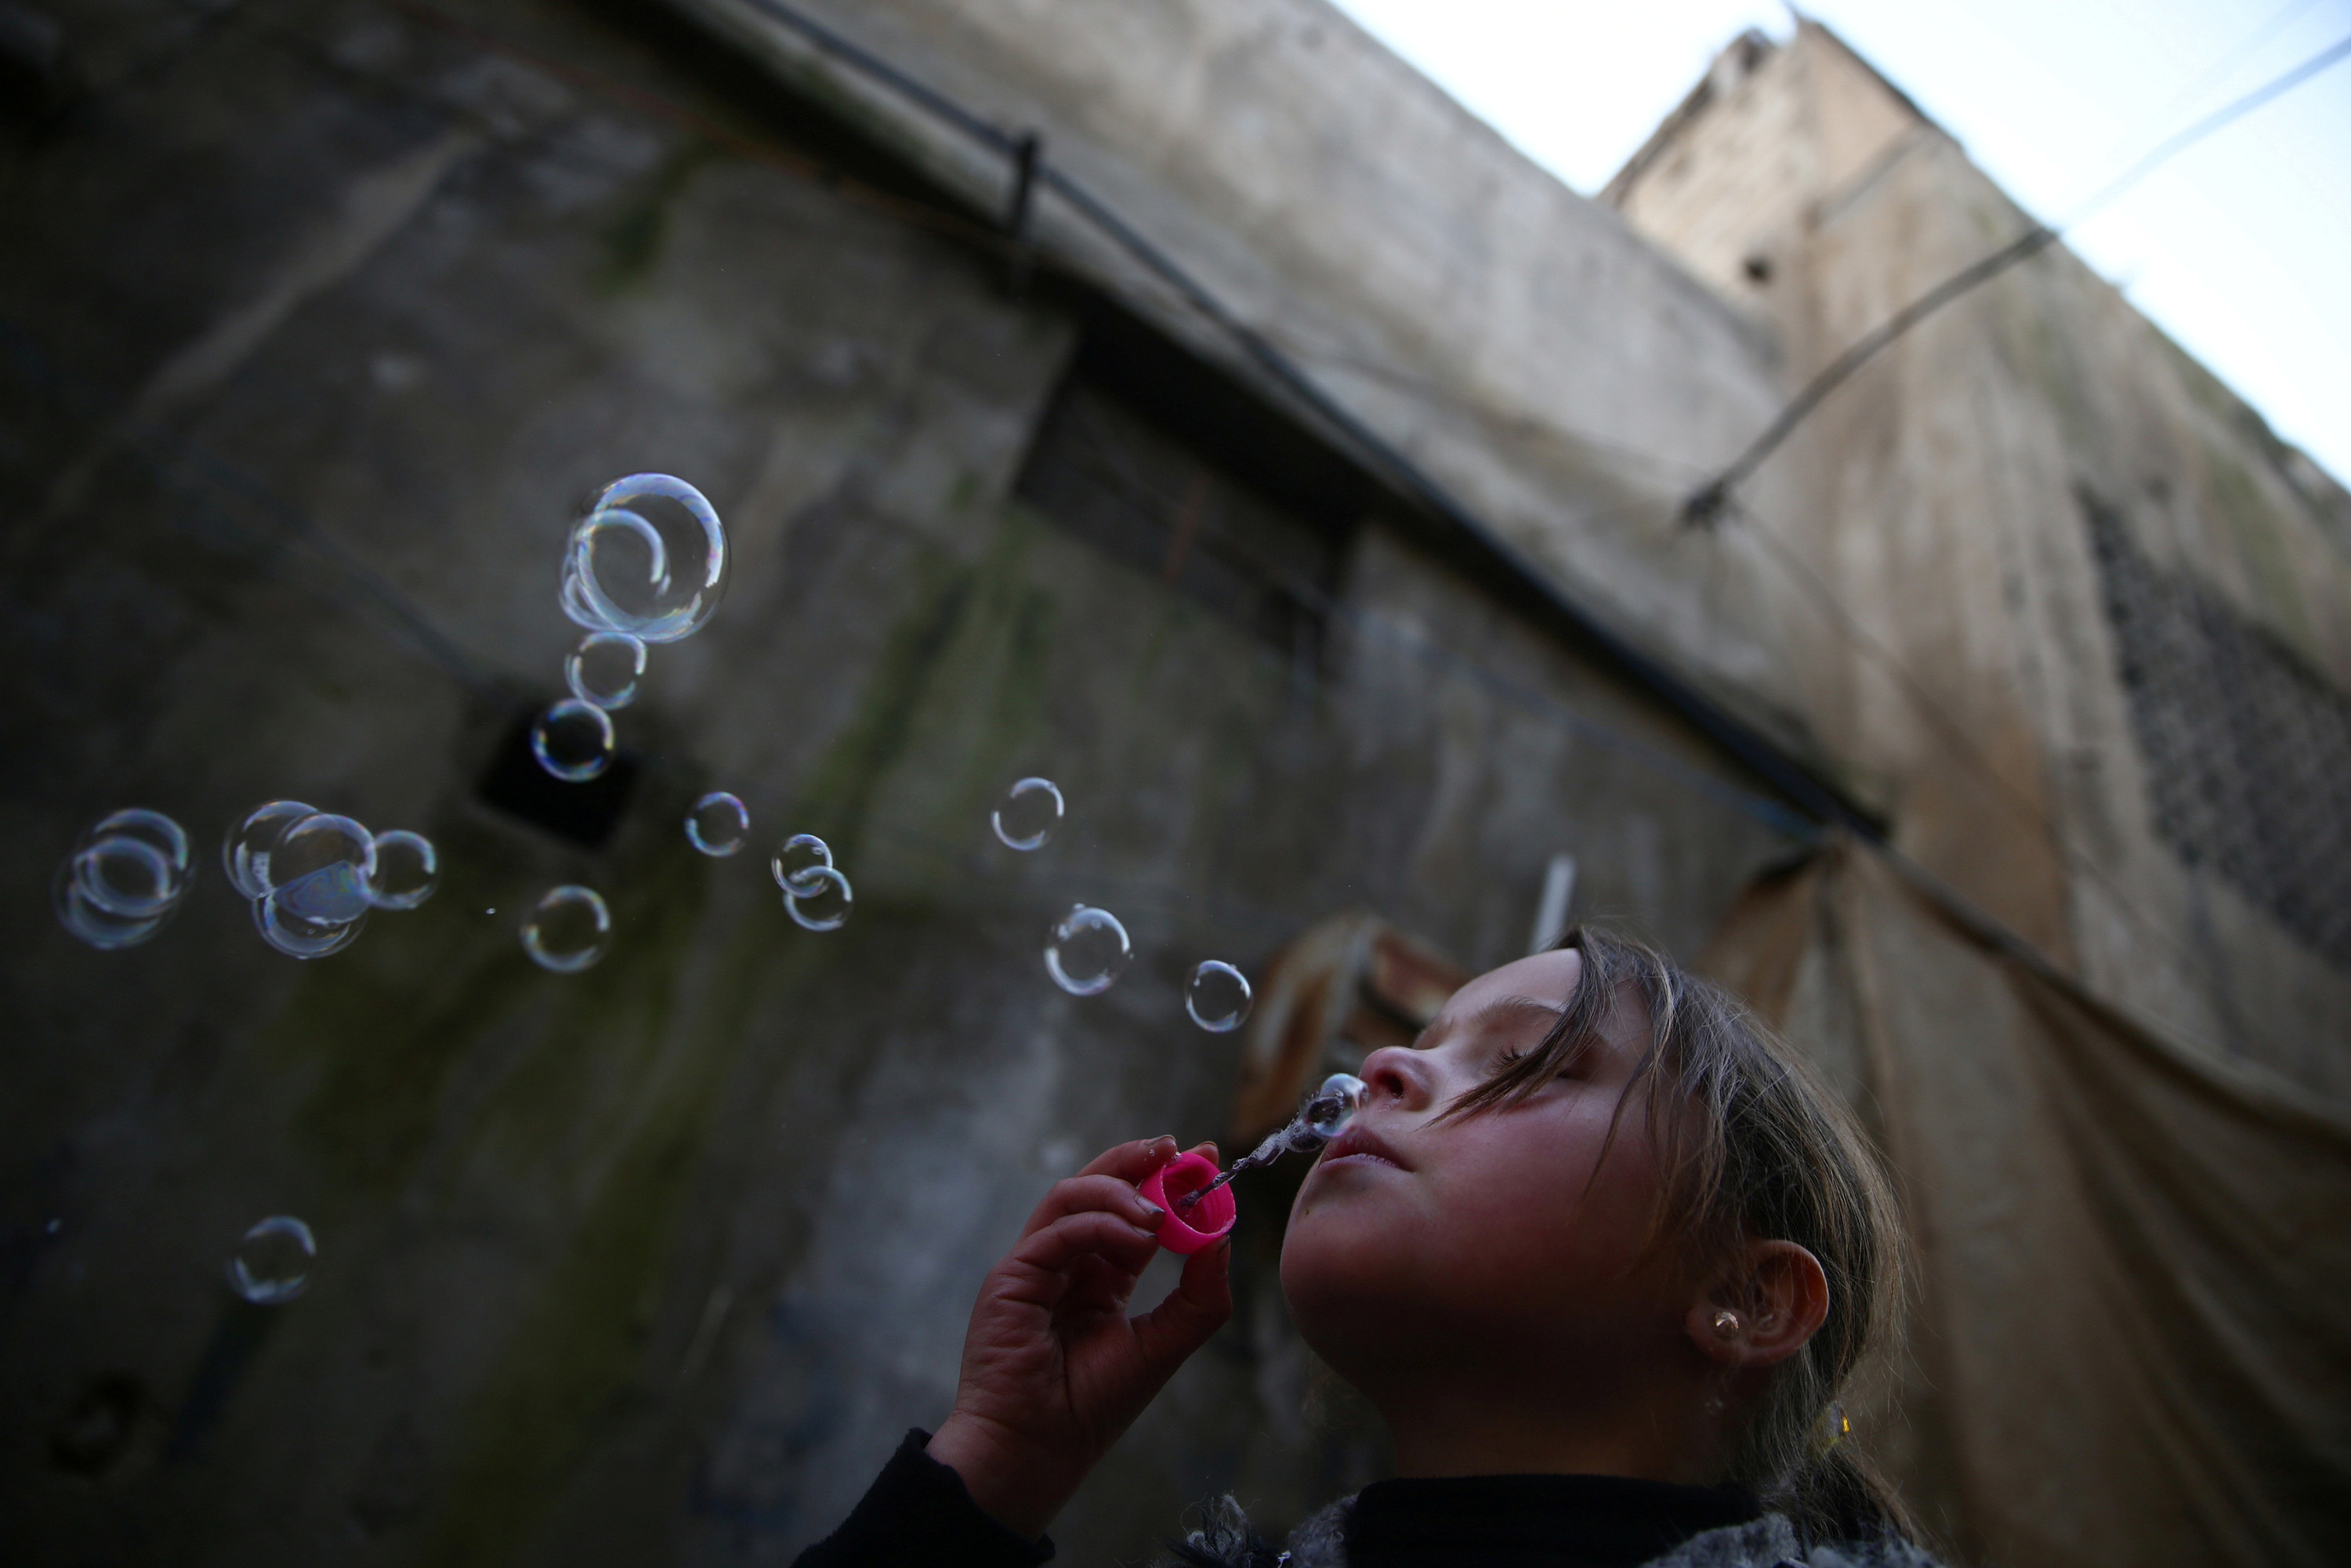 A Syrian girl blows bubbles next to a weathered building